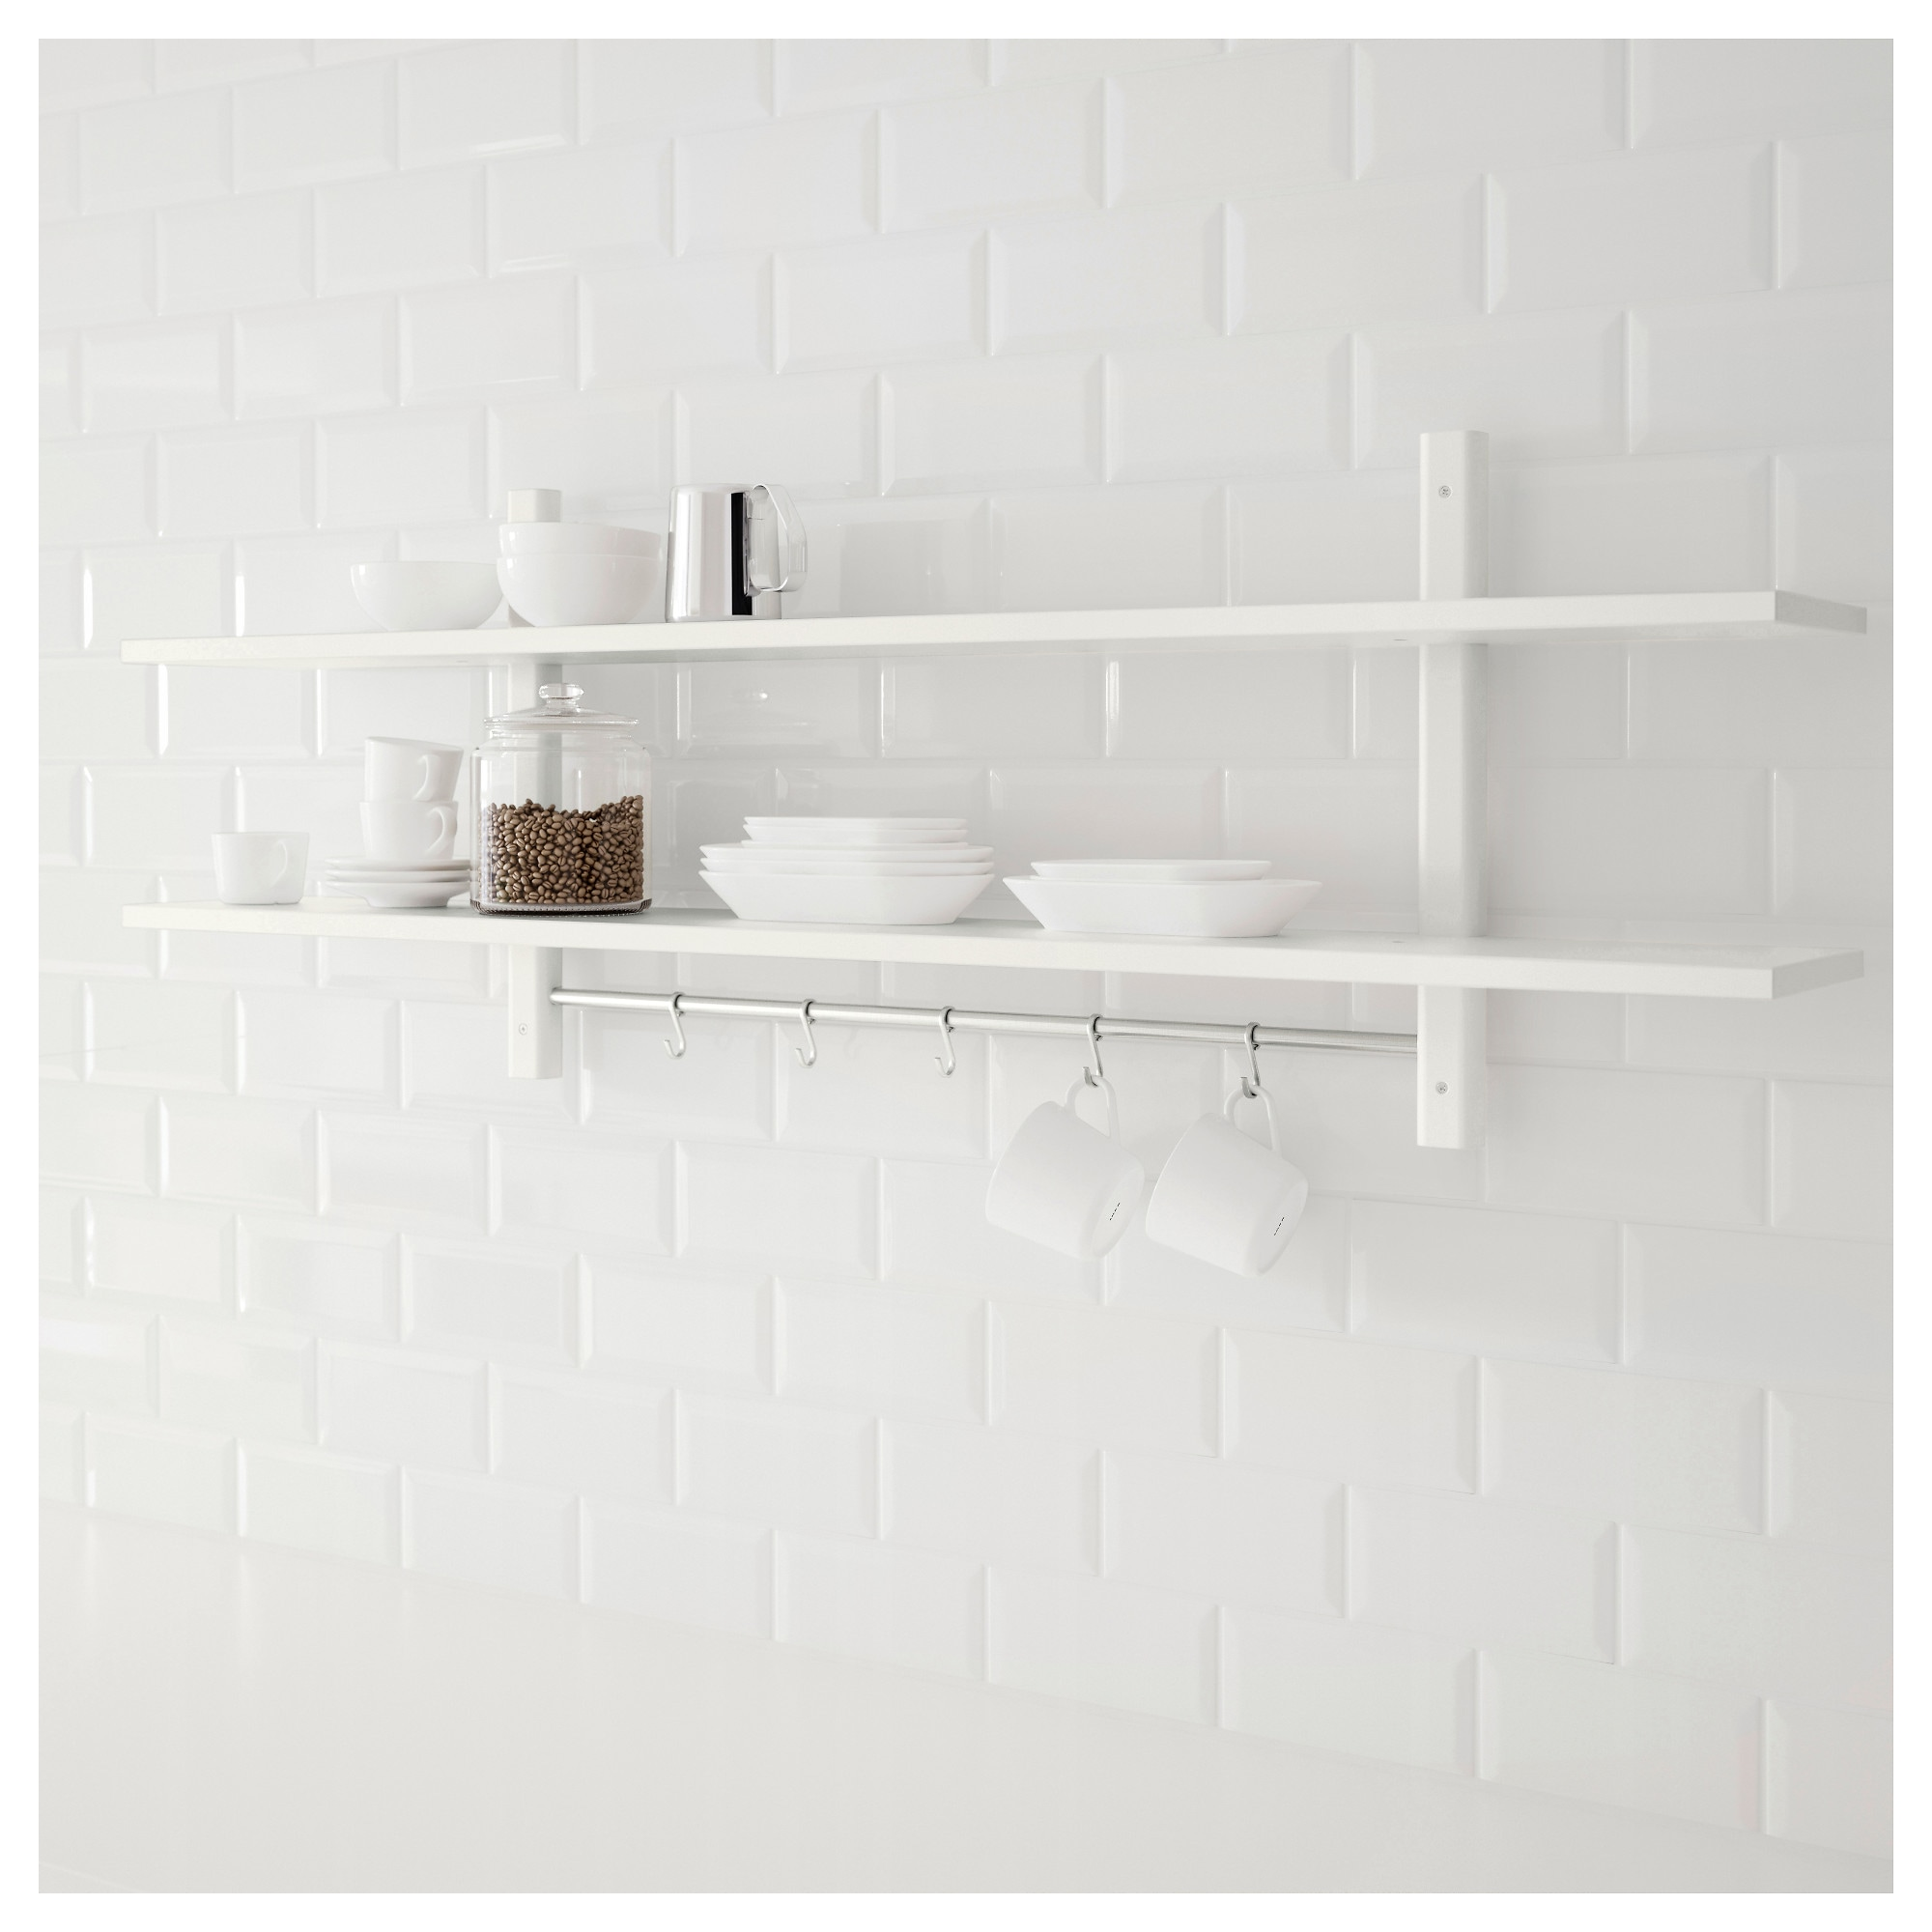 wooden wall maplecoatrack products hook rack the joseph modern shelf coat